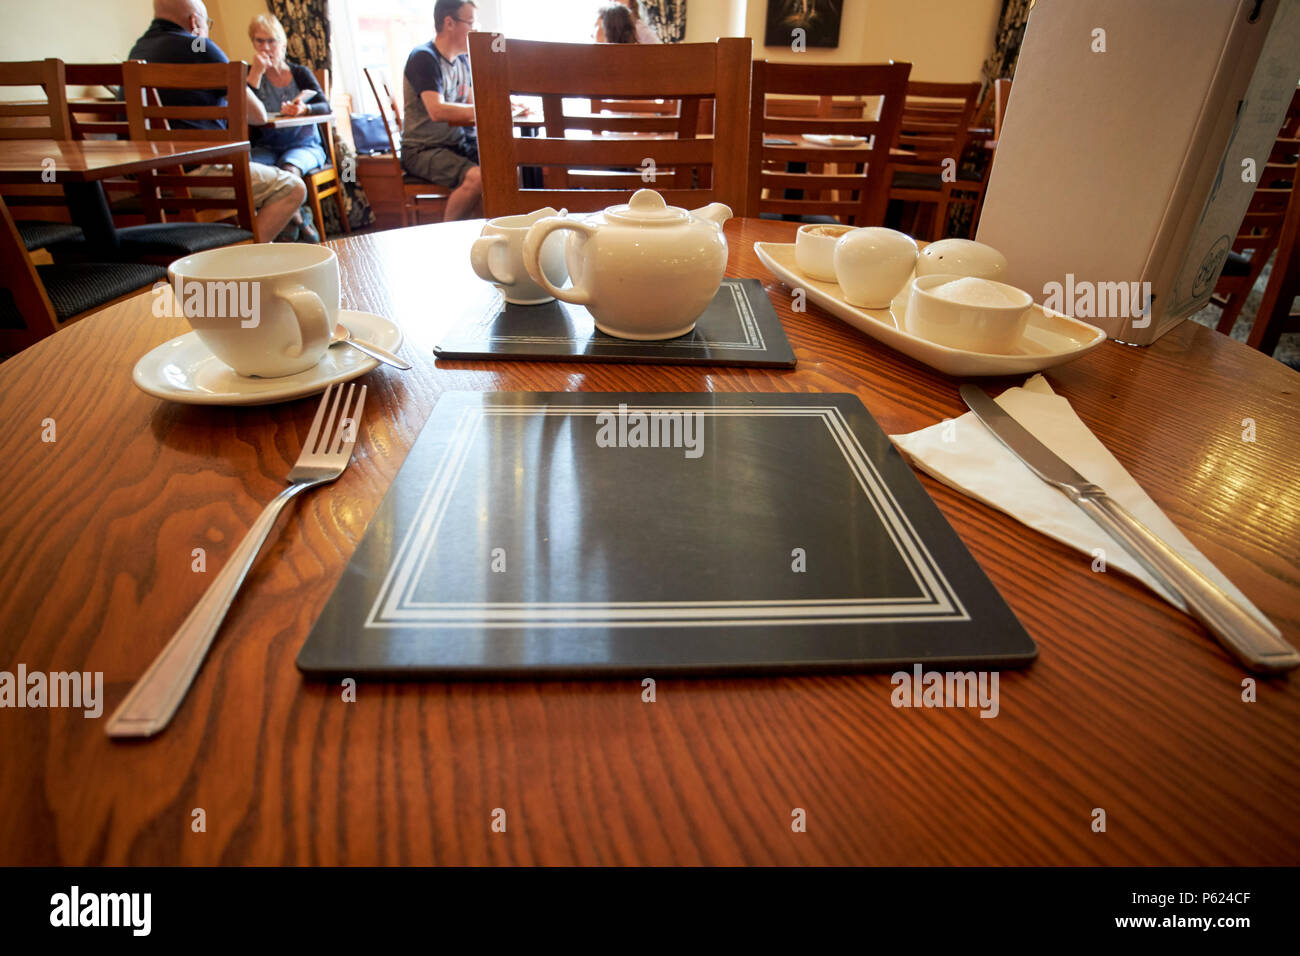 place setting in an old fashioned cafe tea room Keswick Lake District Cumbria England UK - Stock Image